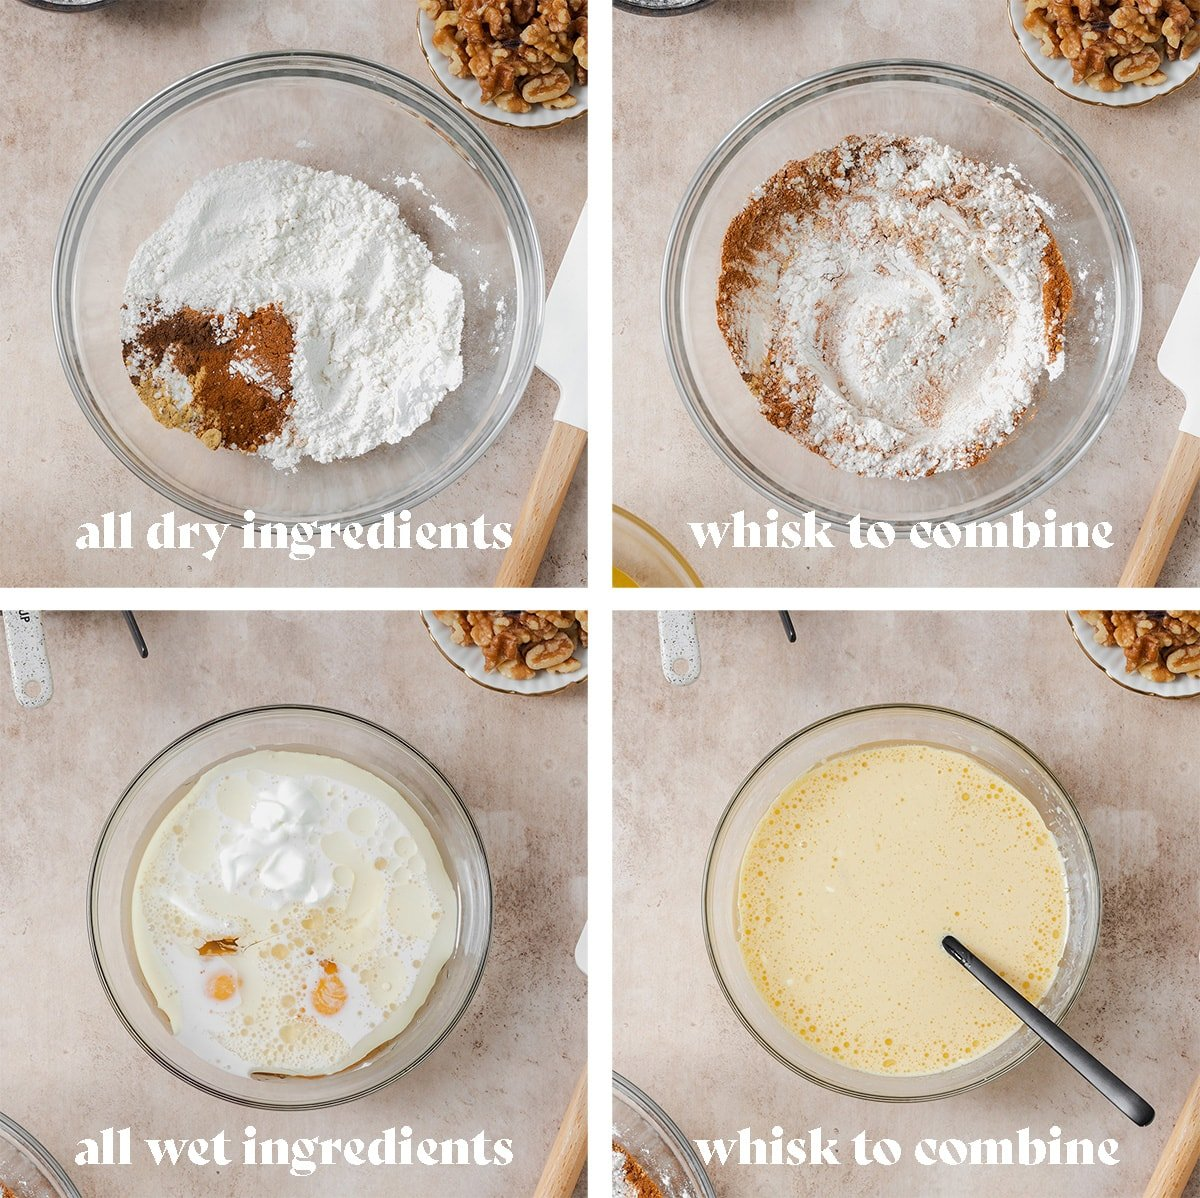 Four process photos of how to make carrot cake waffles step by step. Ingredients being mixed in a bowl.